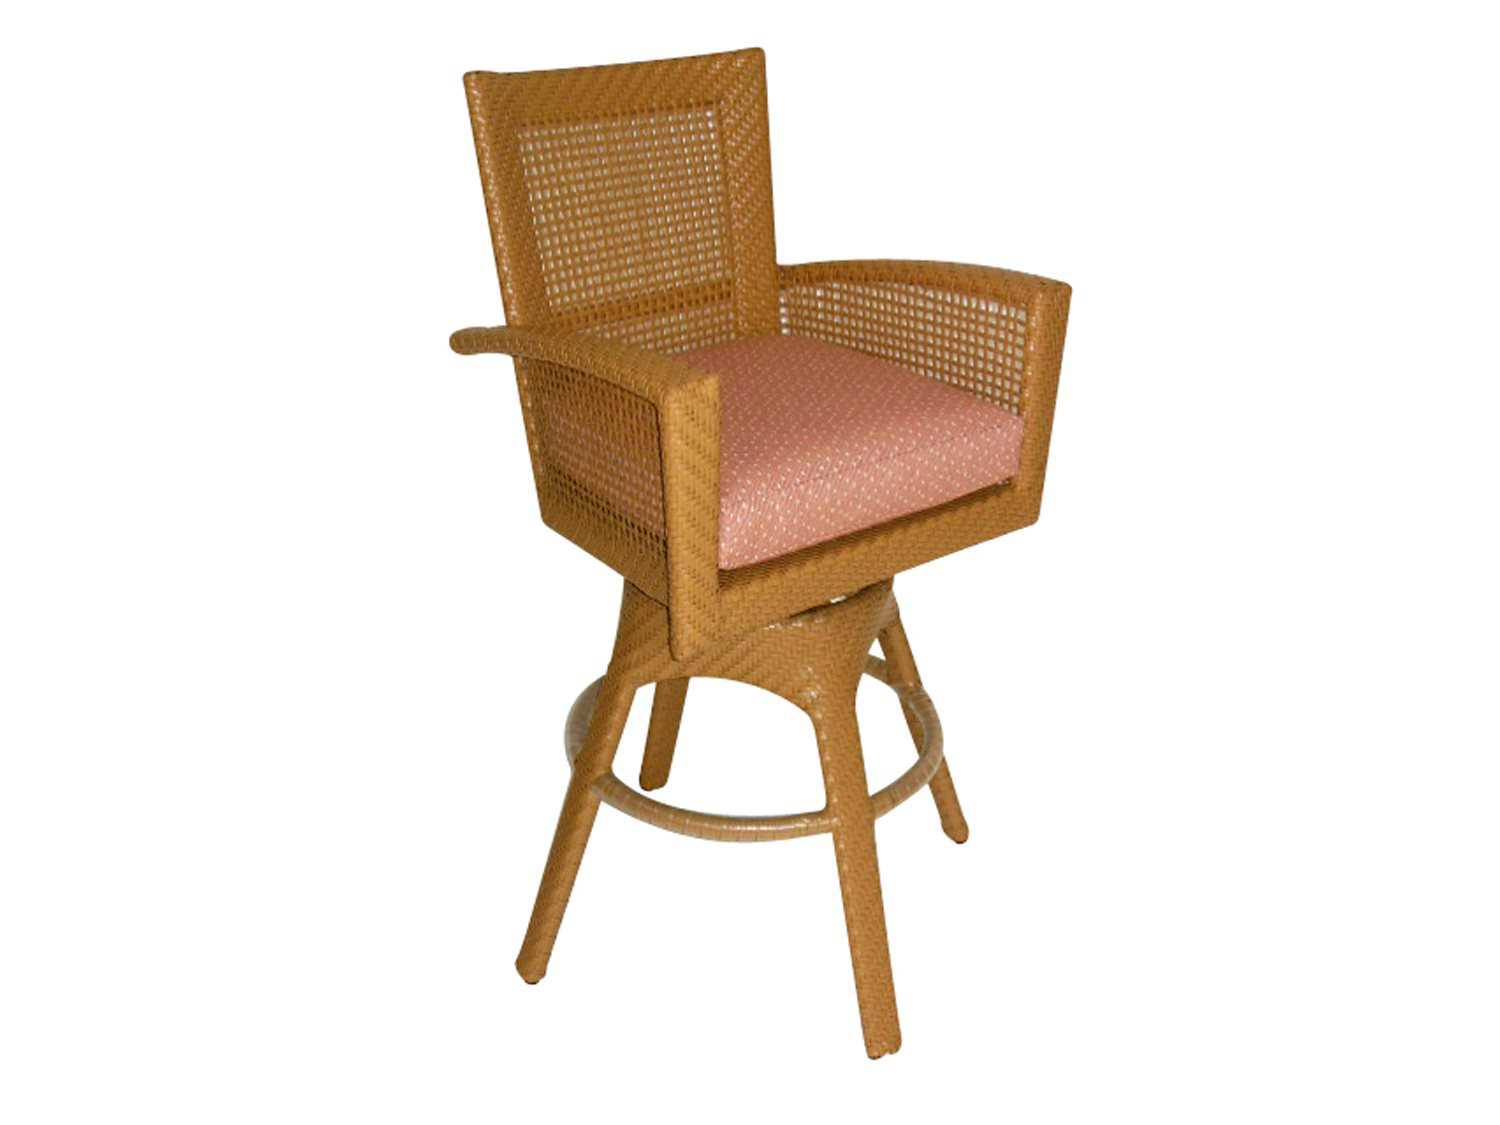 woodard trinidad counter stool replacement cushions 6u0068nch. Black Bedroom Furniture Sets. Home Design Ideas